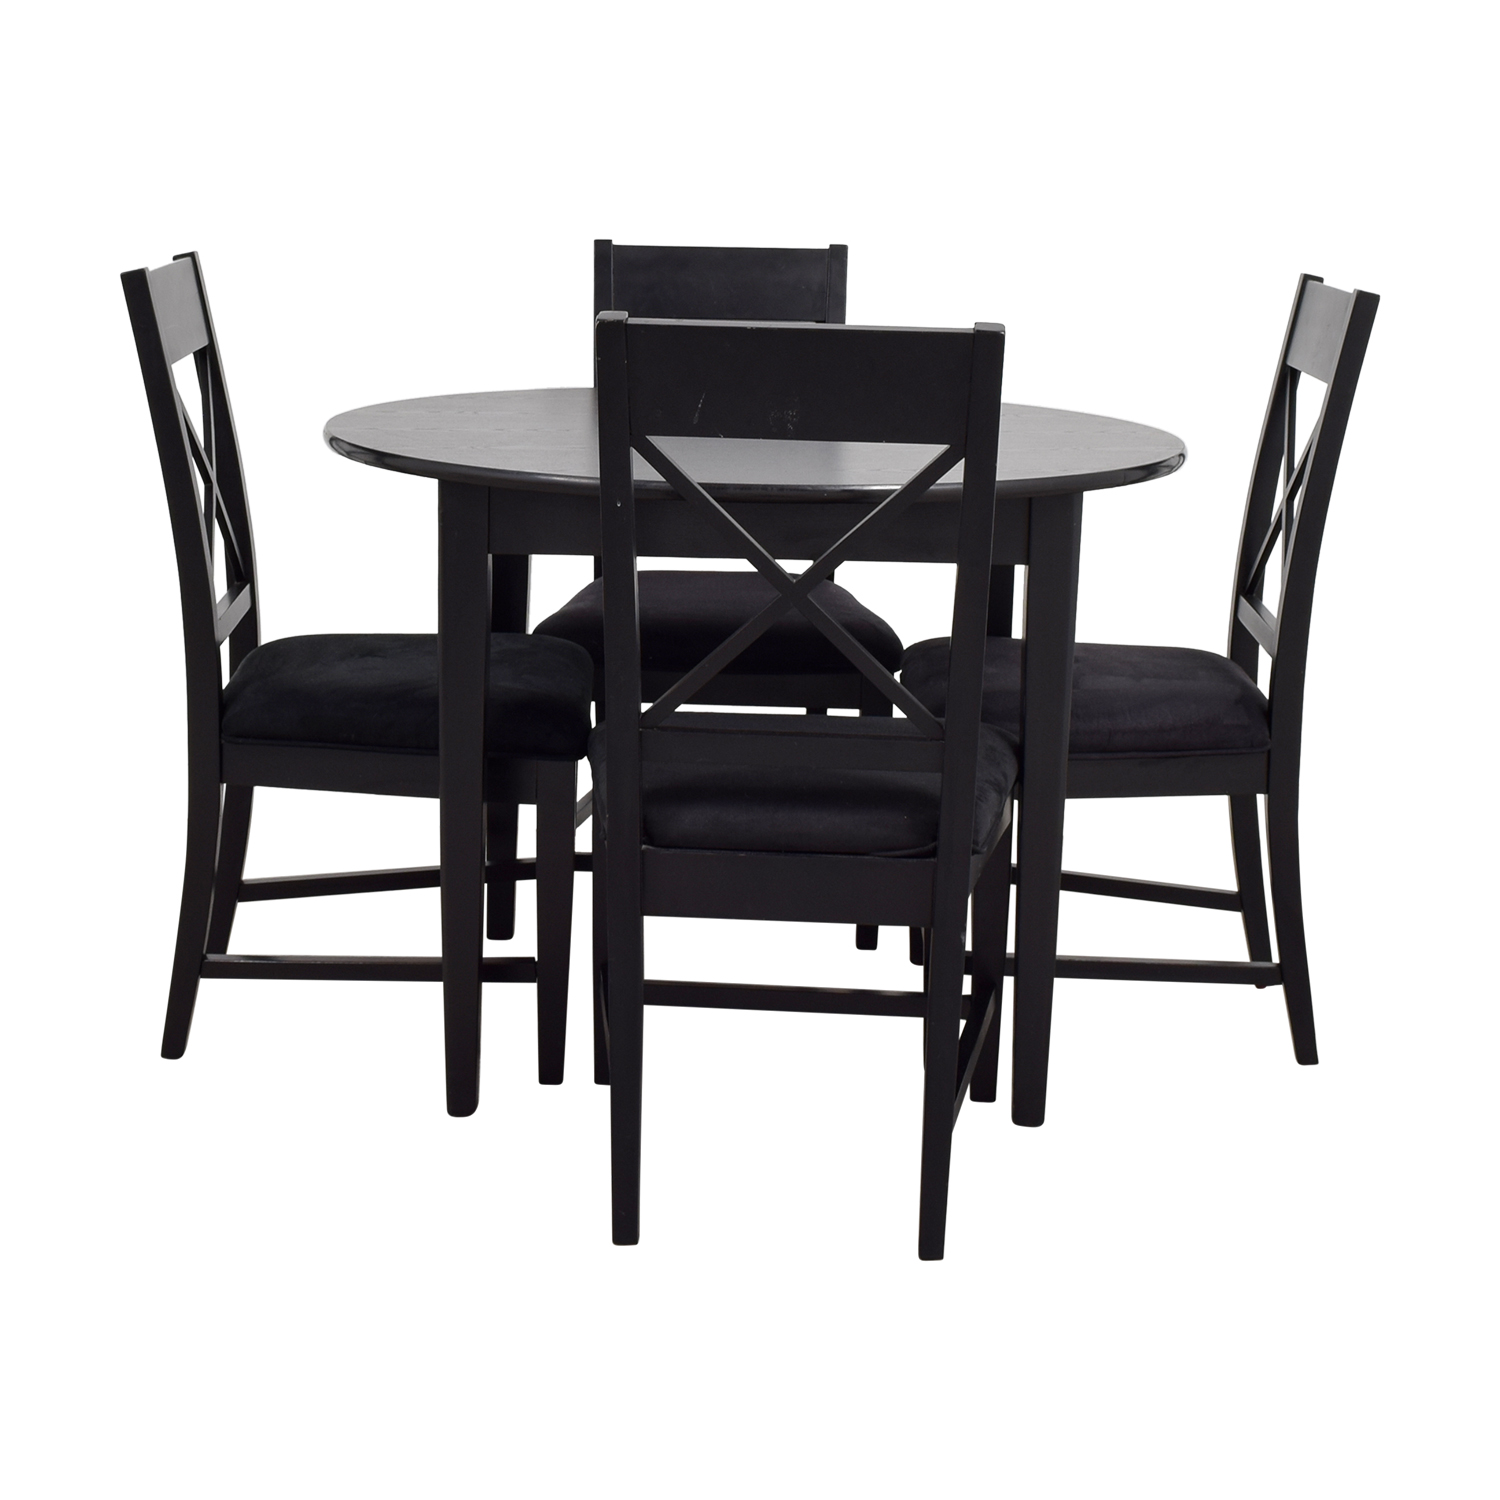 79 off round black wood dining set tables for Black round dining table